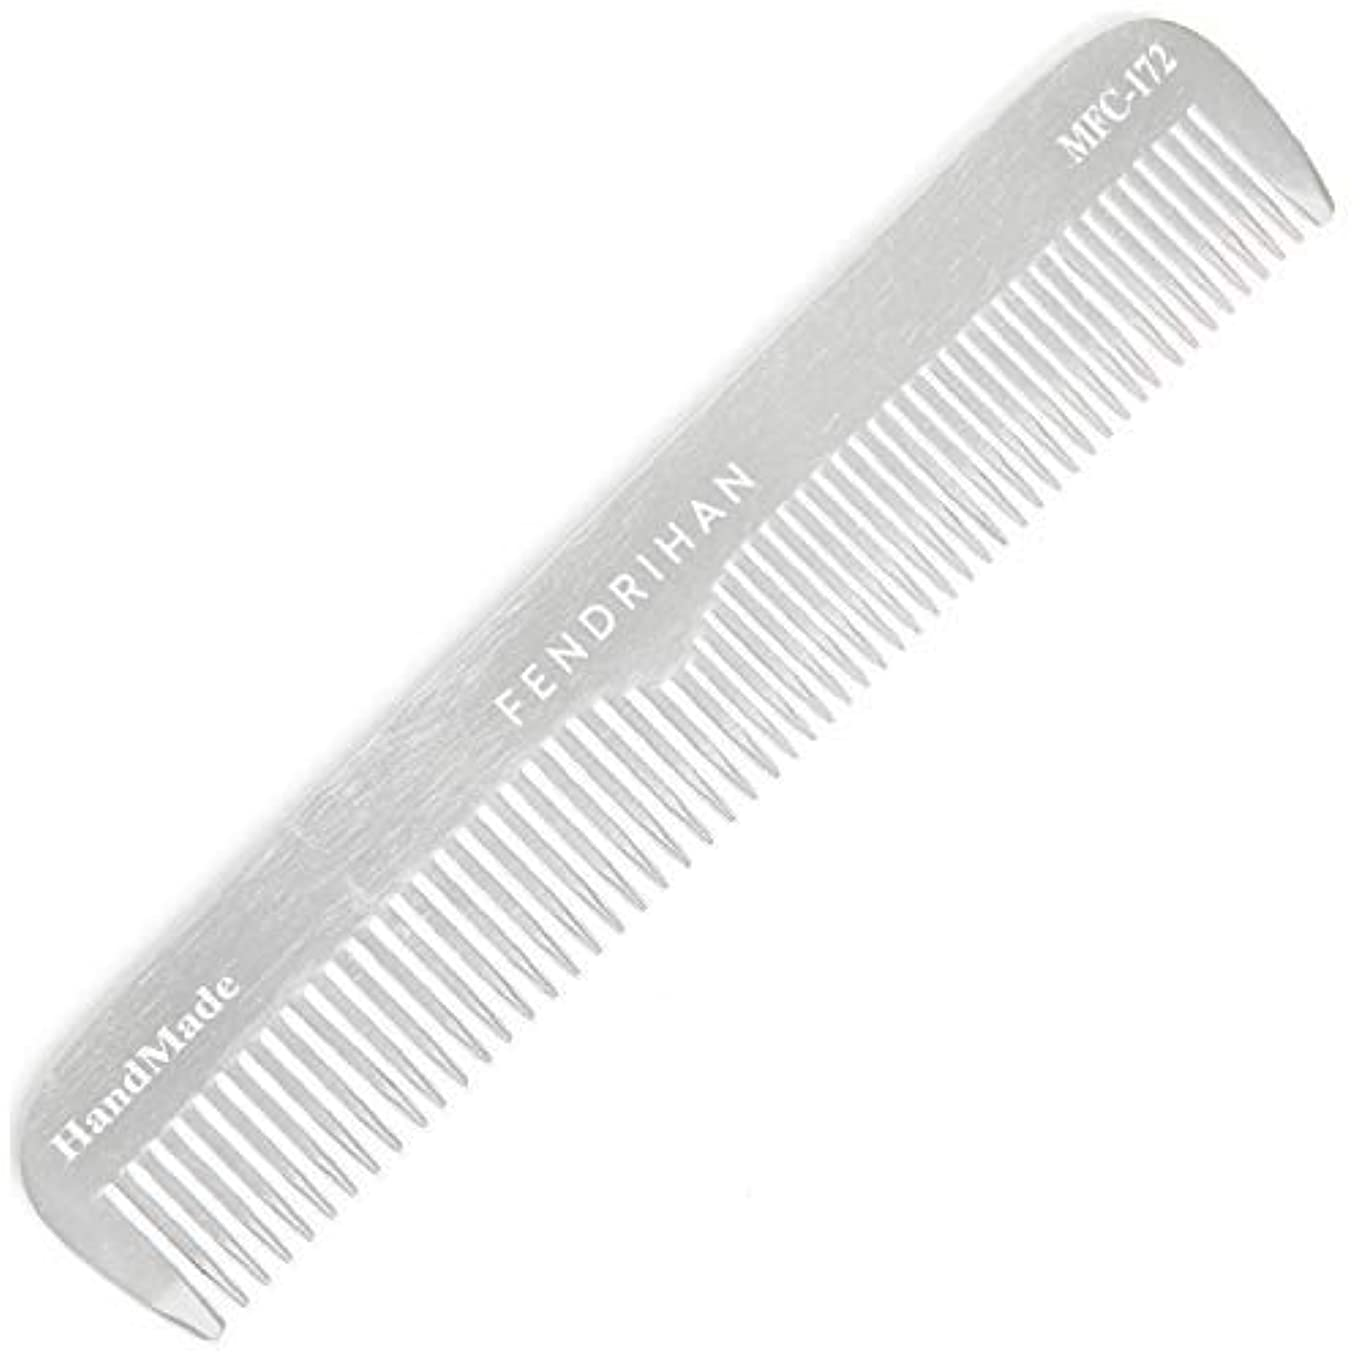 大学生宿サラミFendrihan Sturdy Metal Fine Tooth Barber Grooming Comb (6.7 Inches) [並行輸入品]